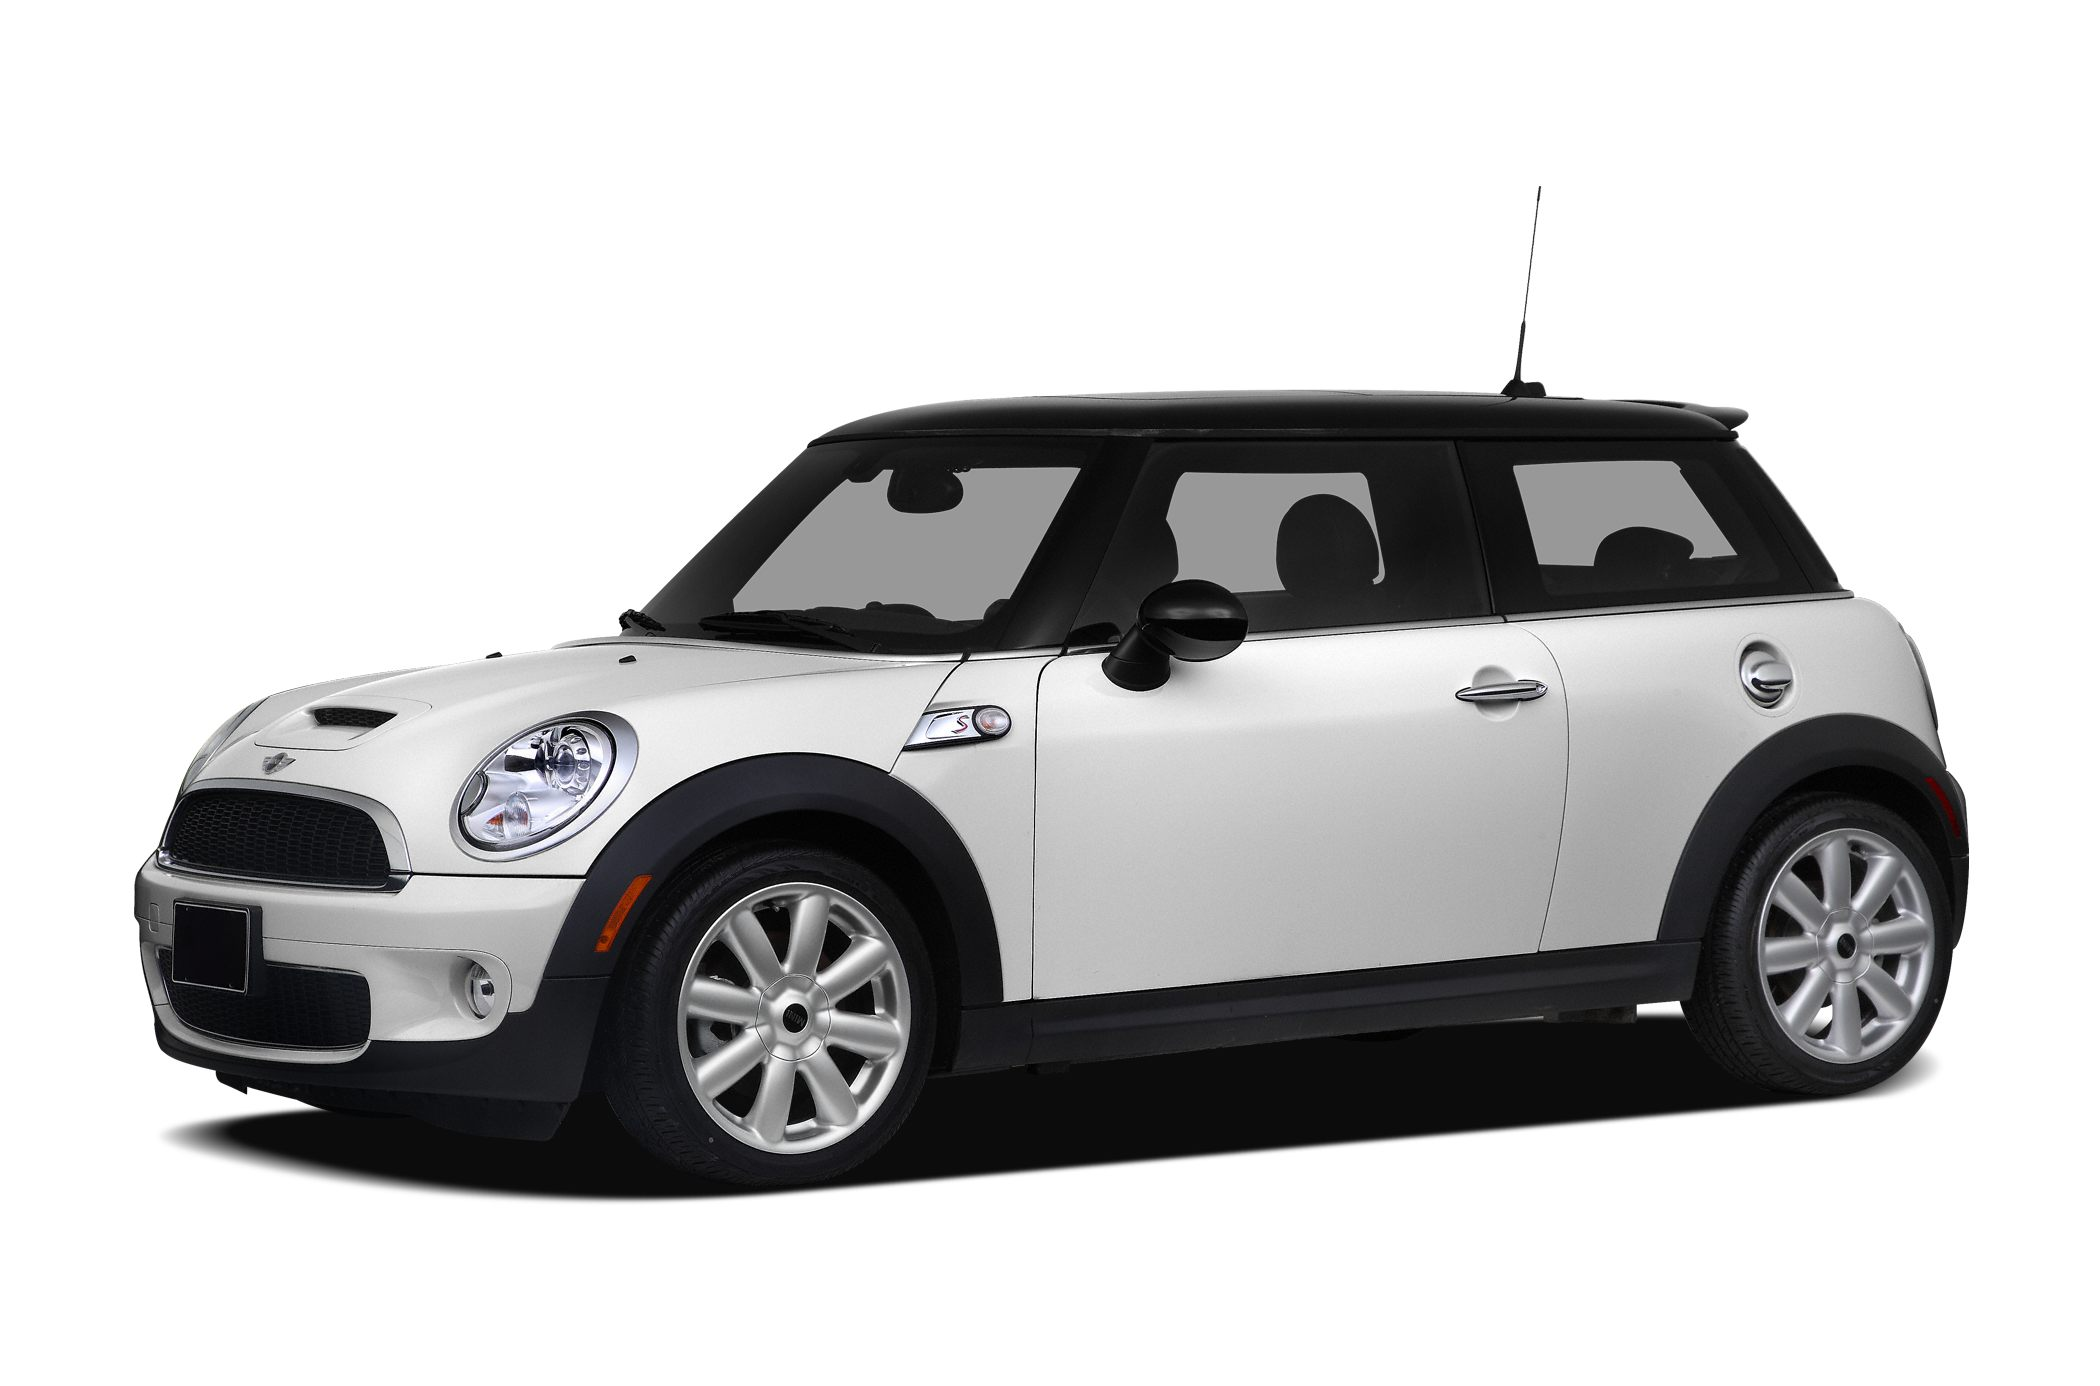 2009 MINI Cooper S Hatchback for sale in Marion for $16,500 with 114,723 miles.